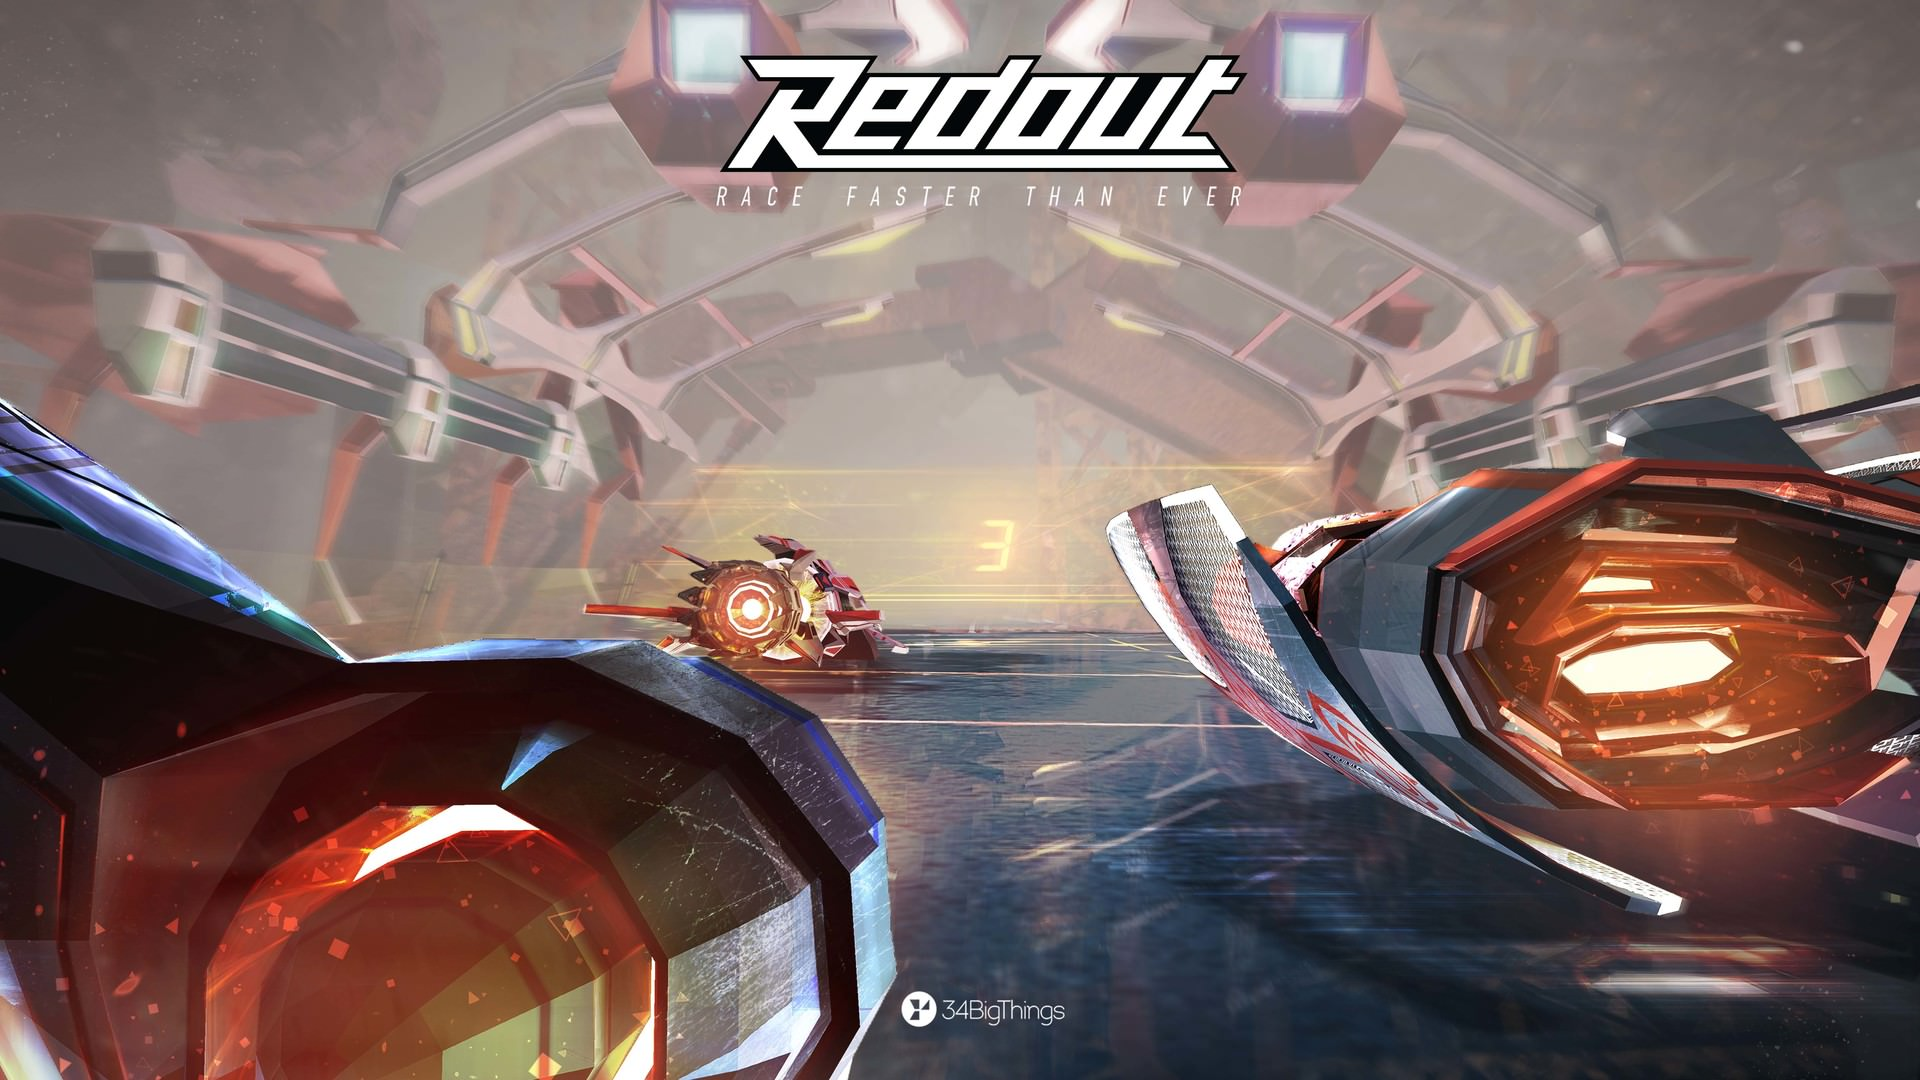 بررسی بازی Redout: Enhanced Edition